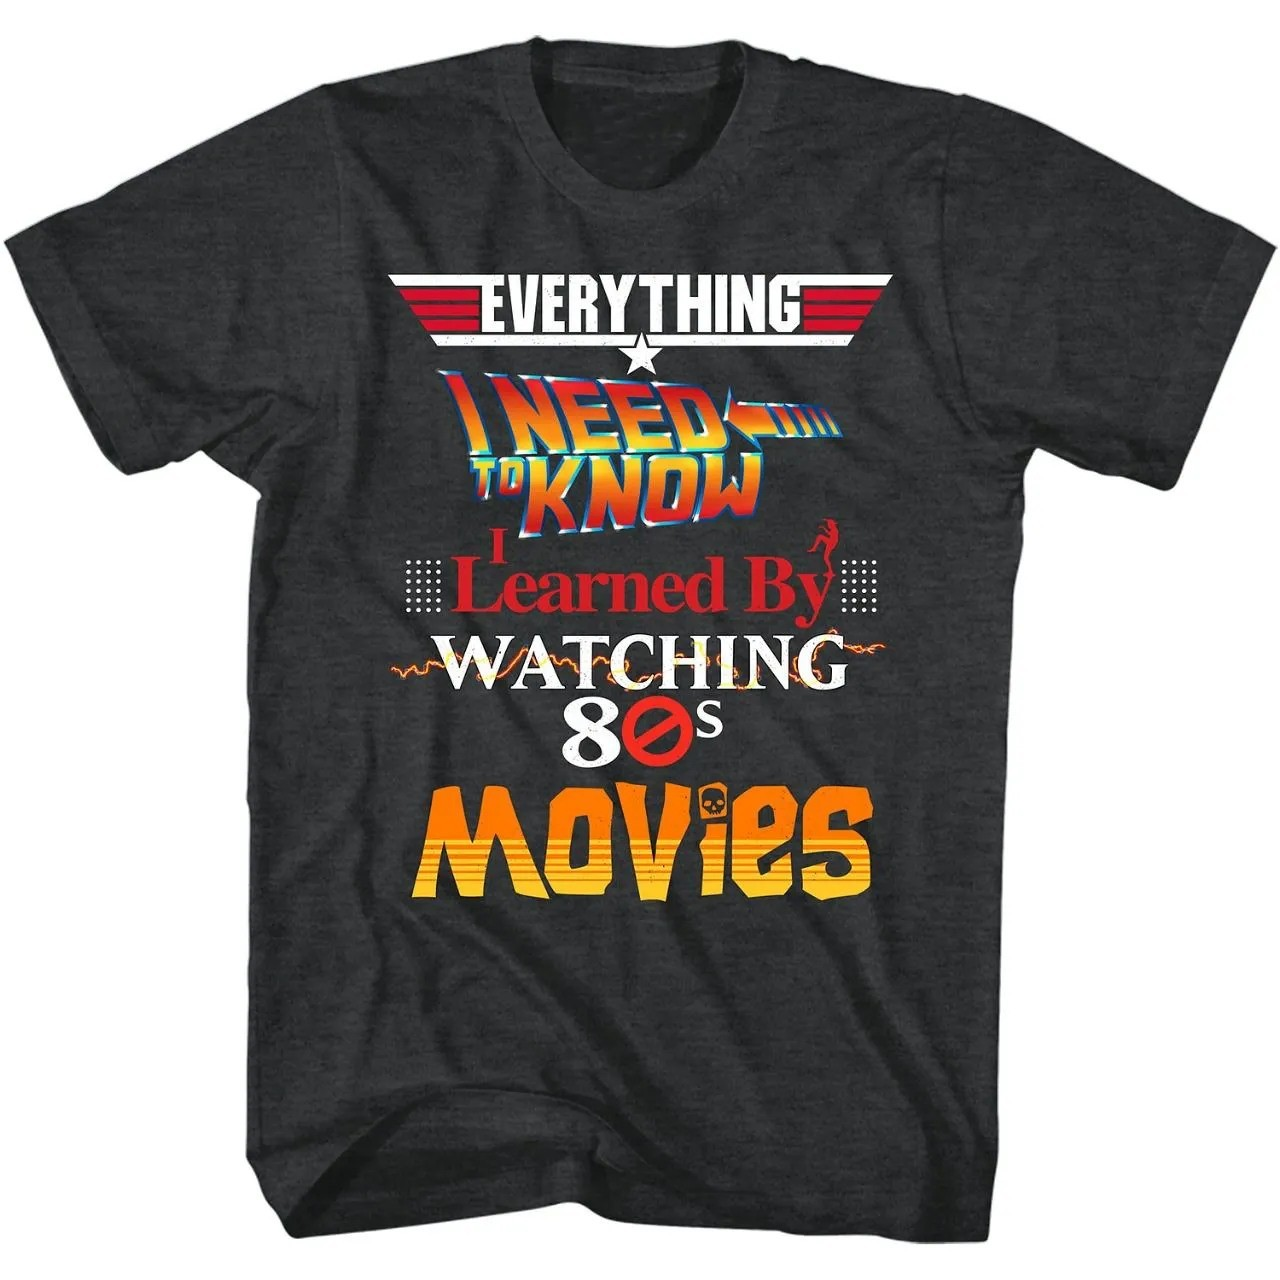 """Camiseta Unissex """"Everything I Need To Know I Learned By Watching 80´s Movies"""" (Preto)"""